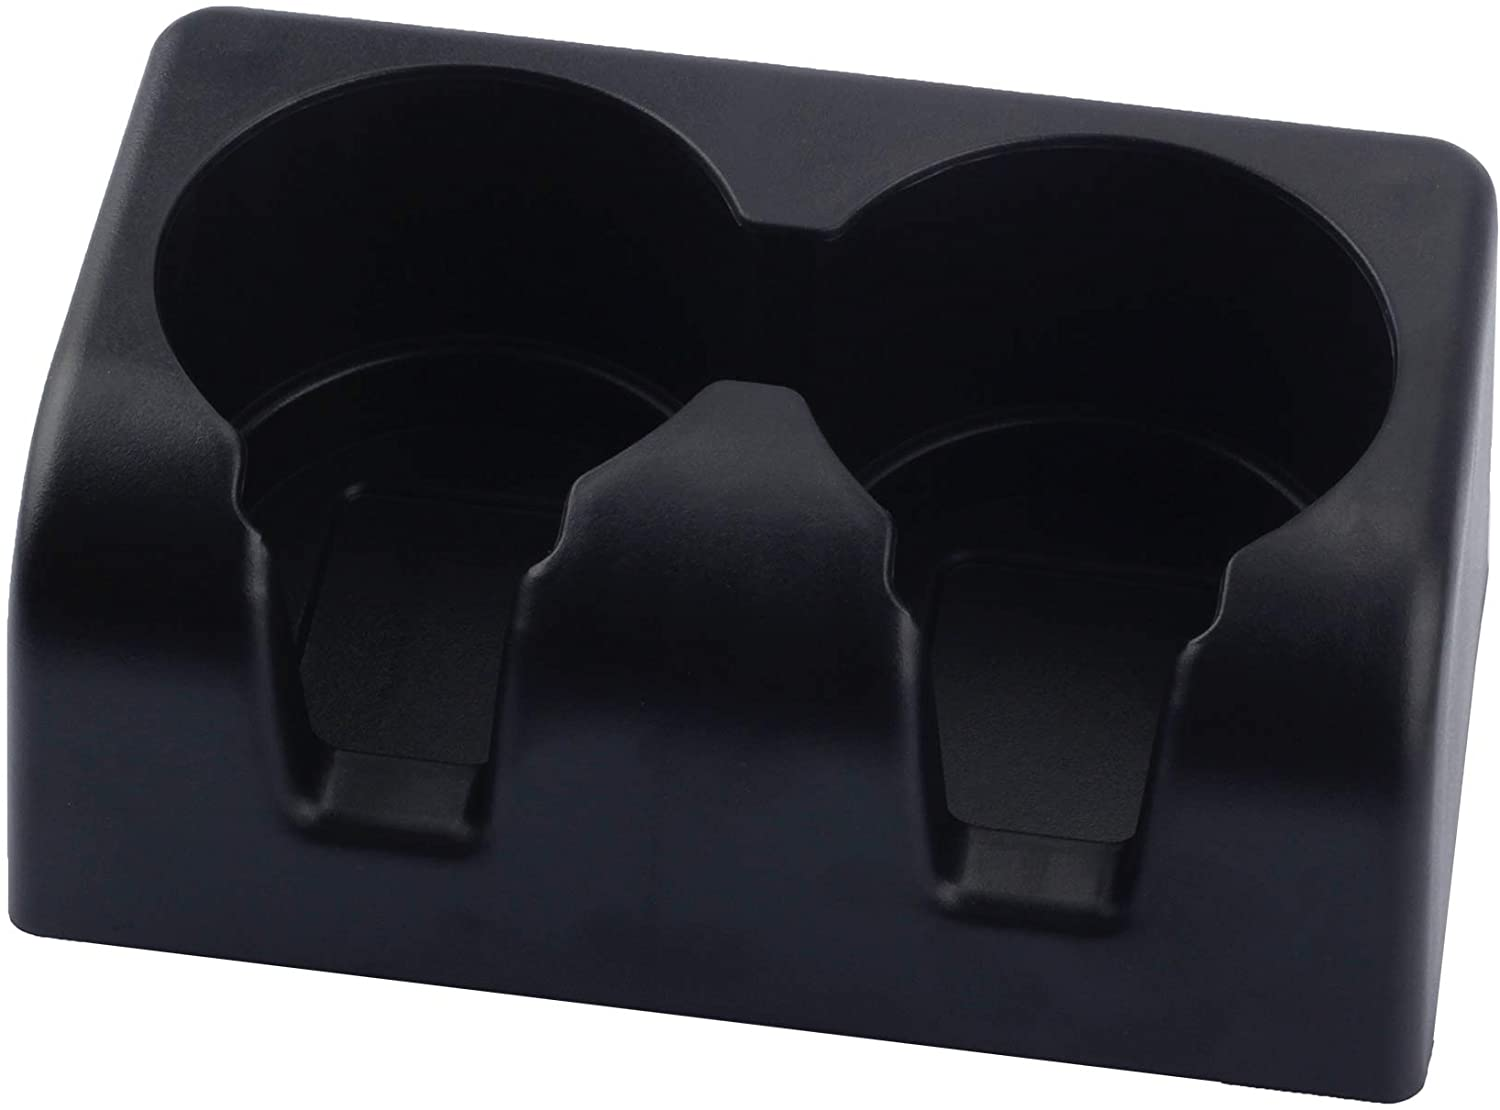 Bench Seat Cup Holder Insert Drink Replacement For Colorado Canyon Oe: 19256630 OE:19256630